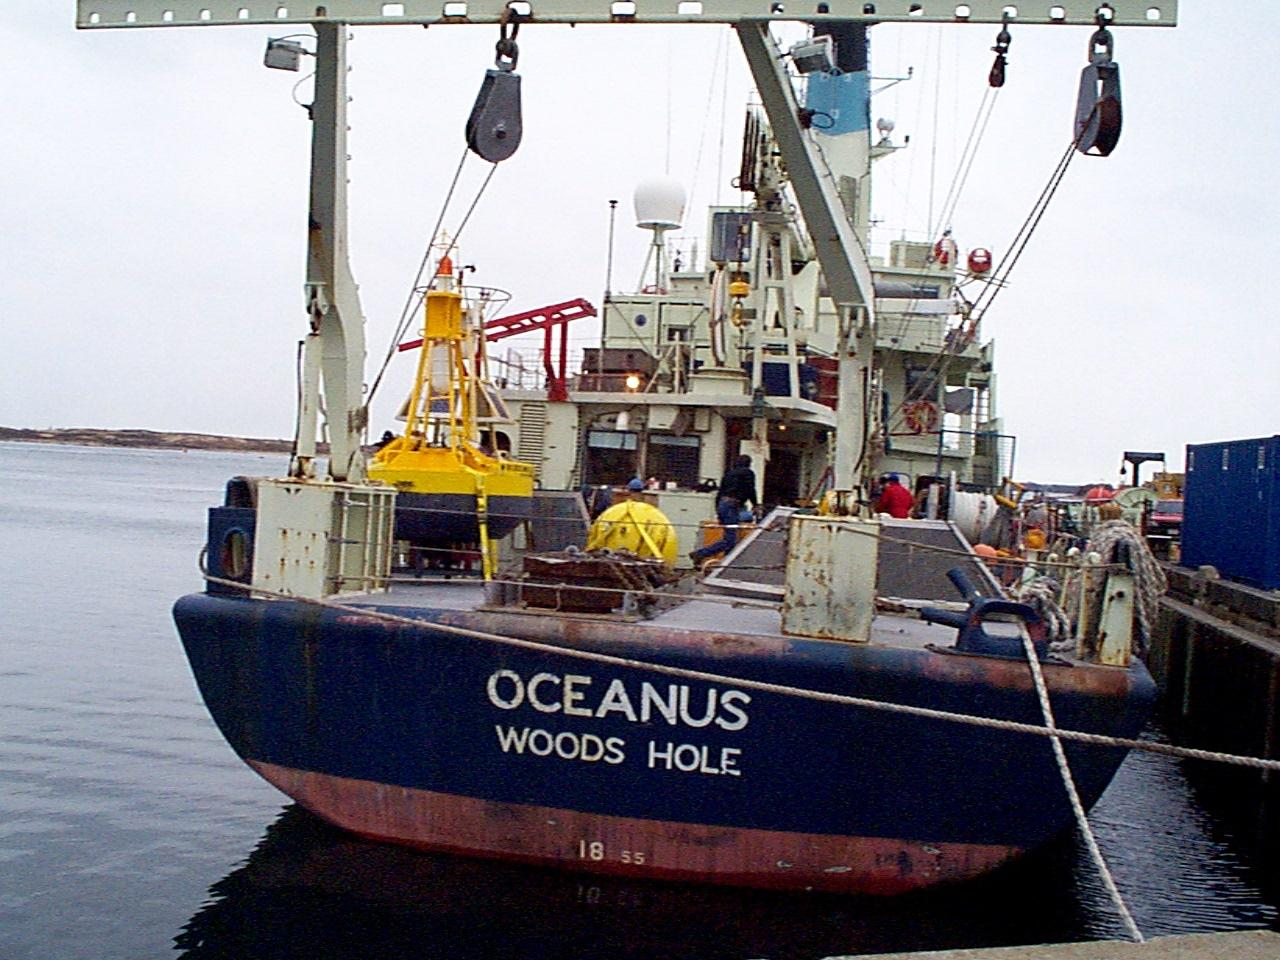 Oceanus Loaded for OC321